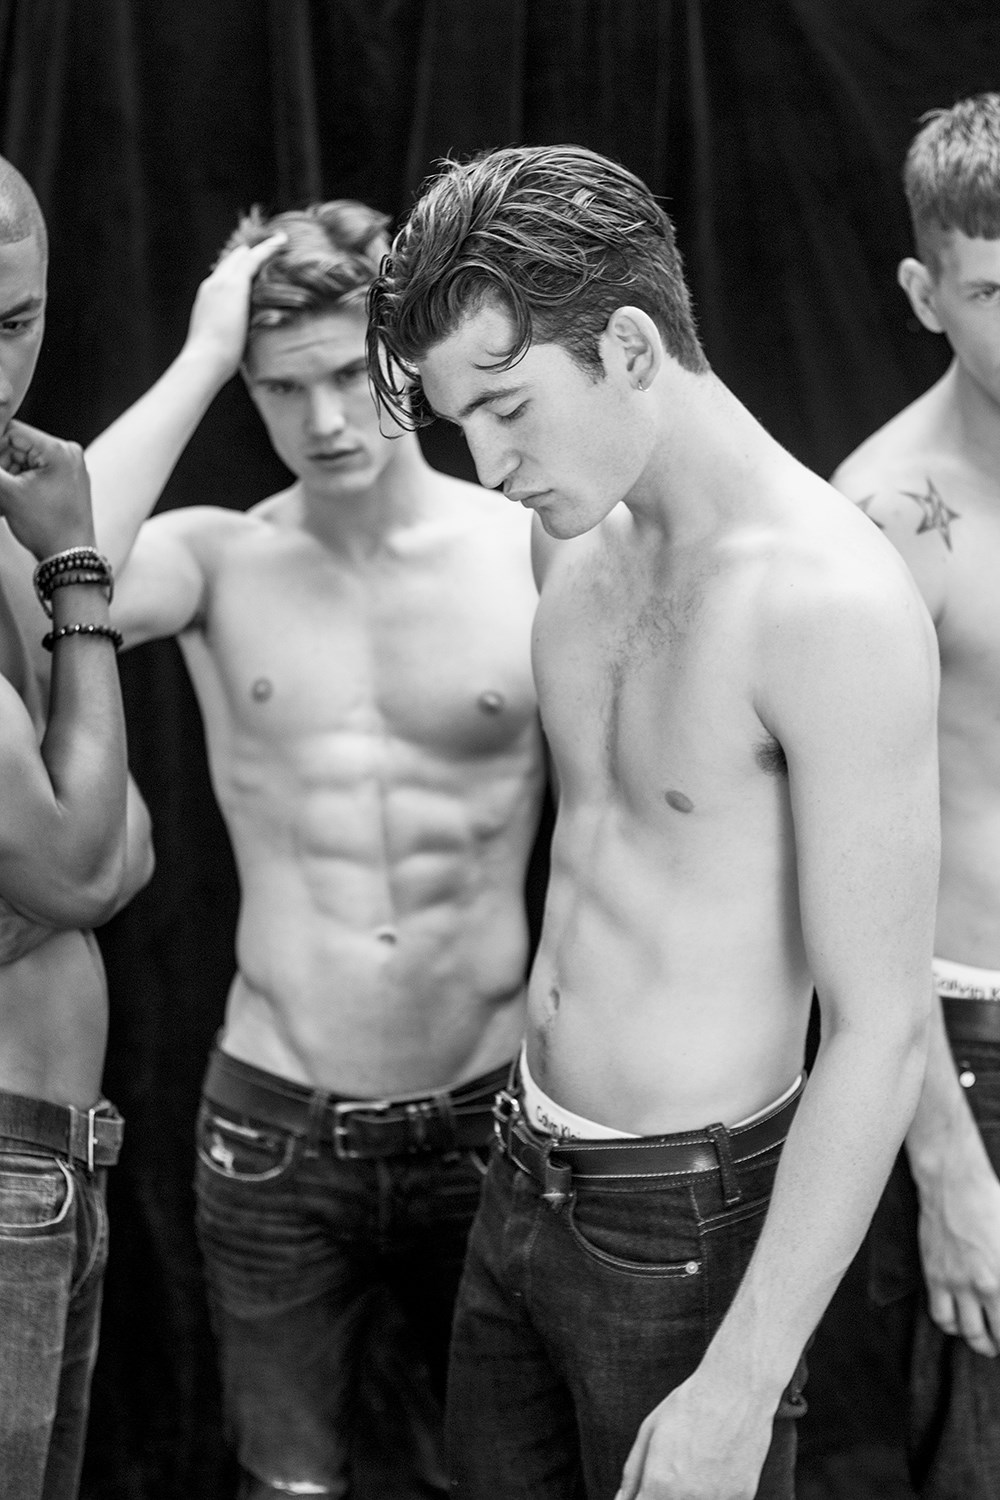 'Boys of Summer' Q Models by Gregory Prescott (2)